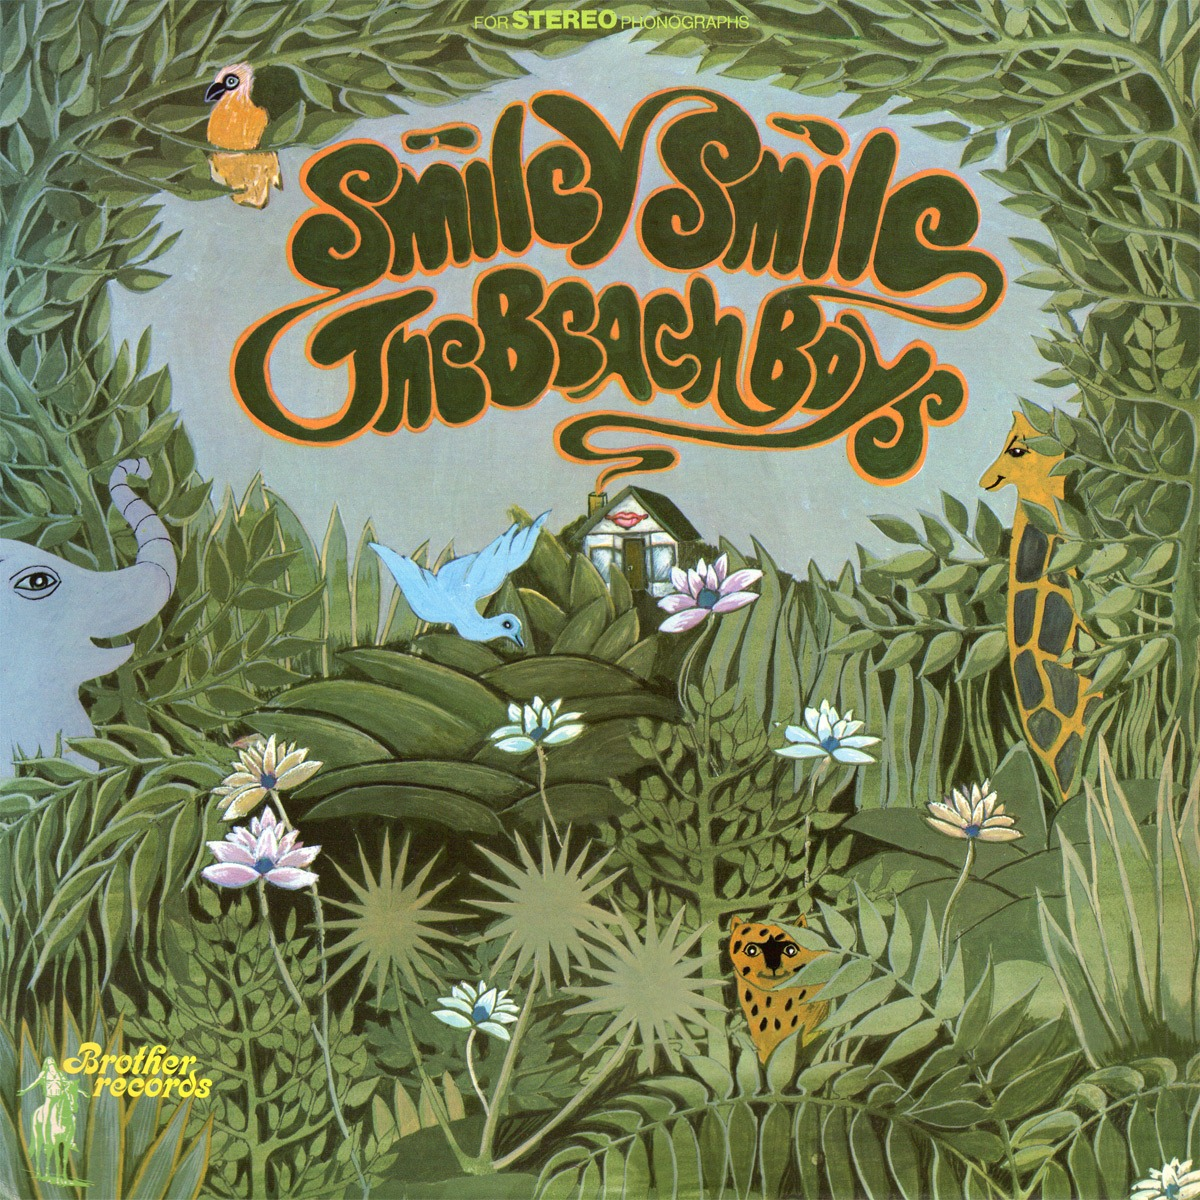 Beach Boys 'Smiley Smile' cover art